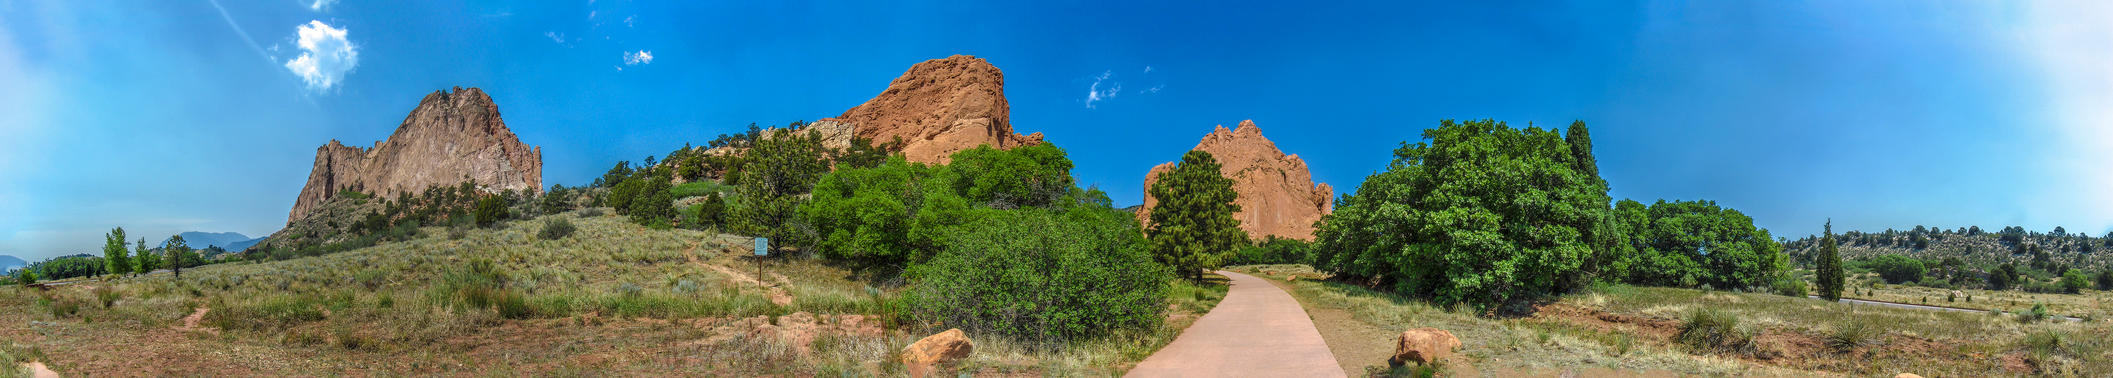 Garden Of the gods Panorama by tim-bot